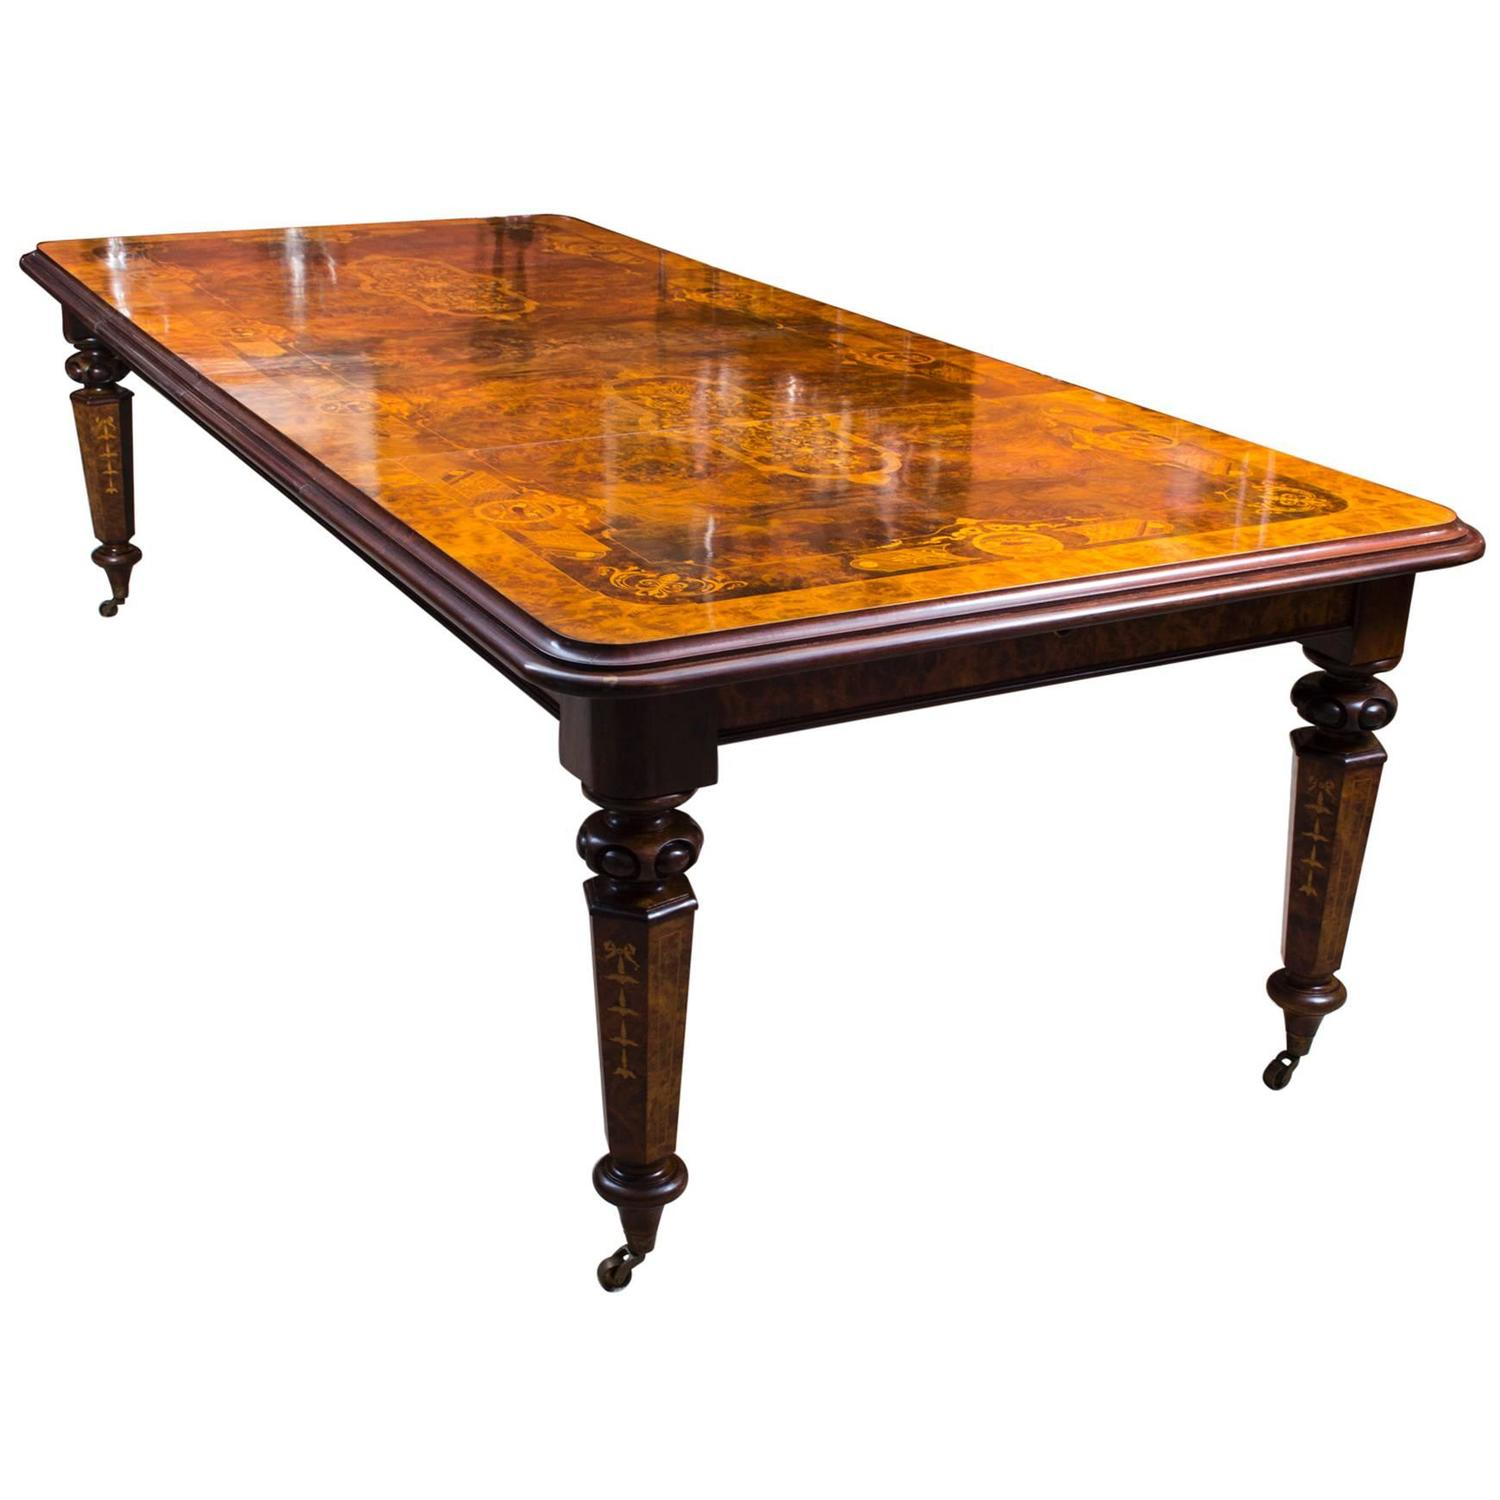 Stunning 10ft burr walnut marquetry dining table for 10ft dining table